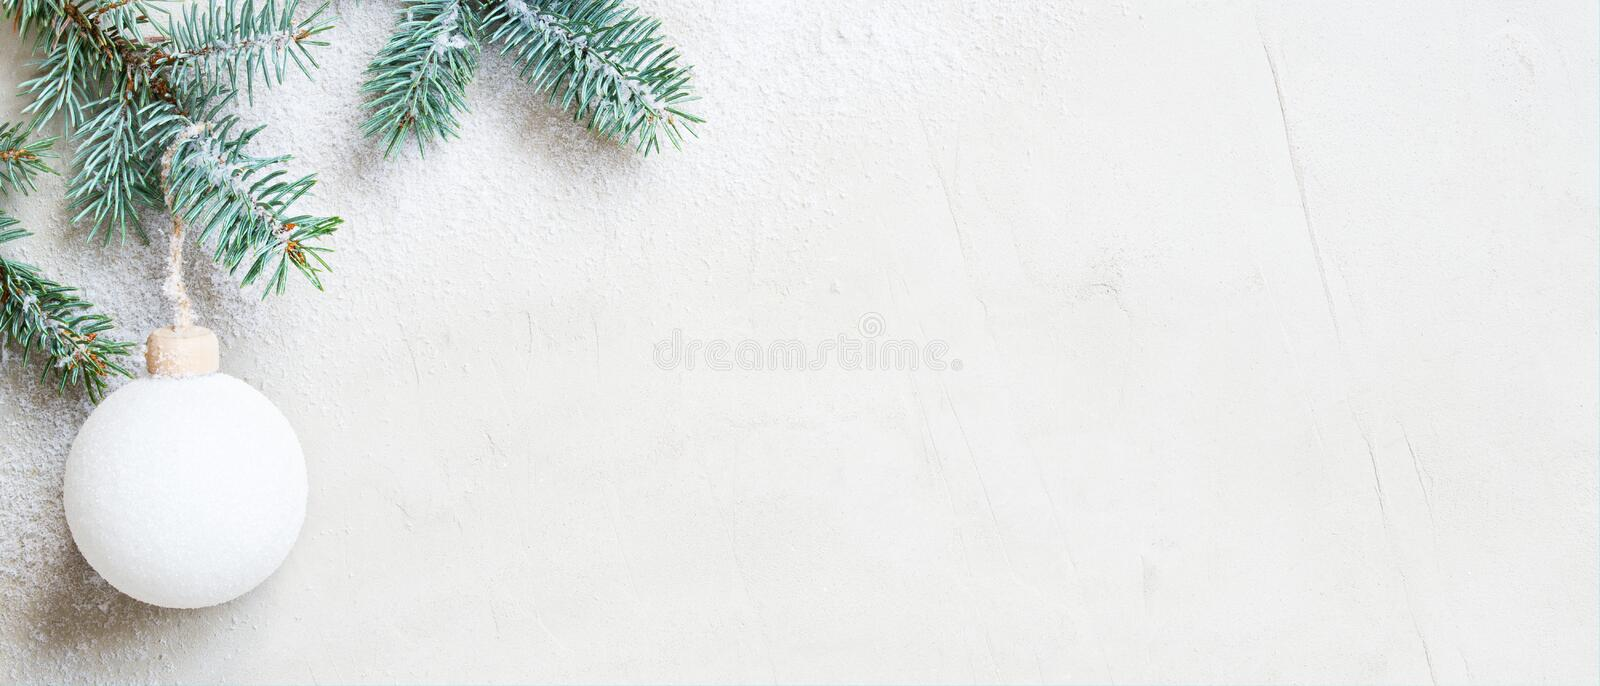 White snow Christmas banner with Christmas tree branch and ball royalty free stock photos